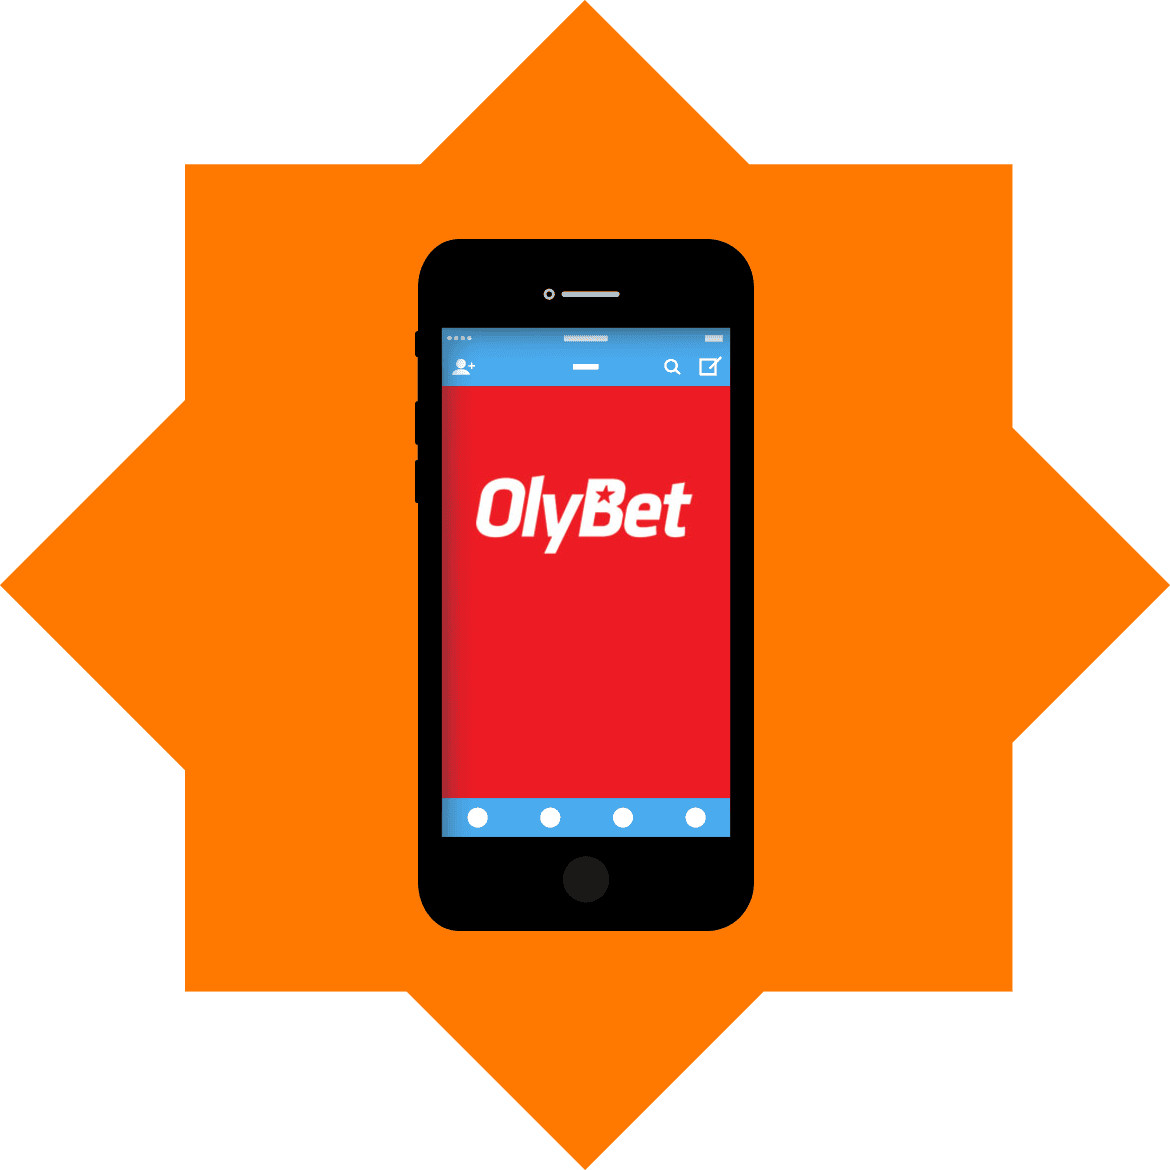 Olybet - Mobile friendly